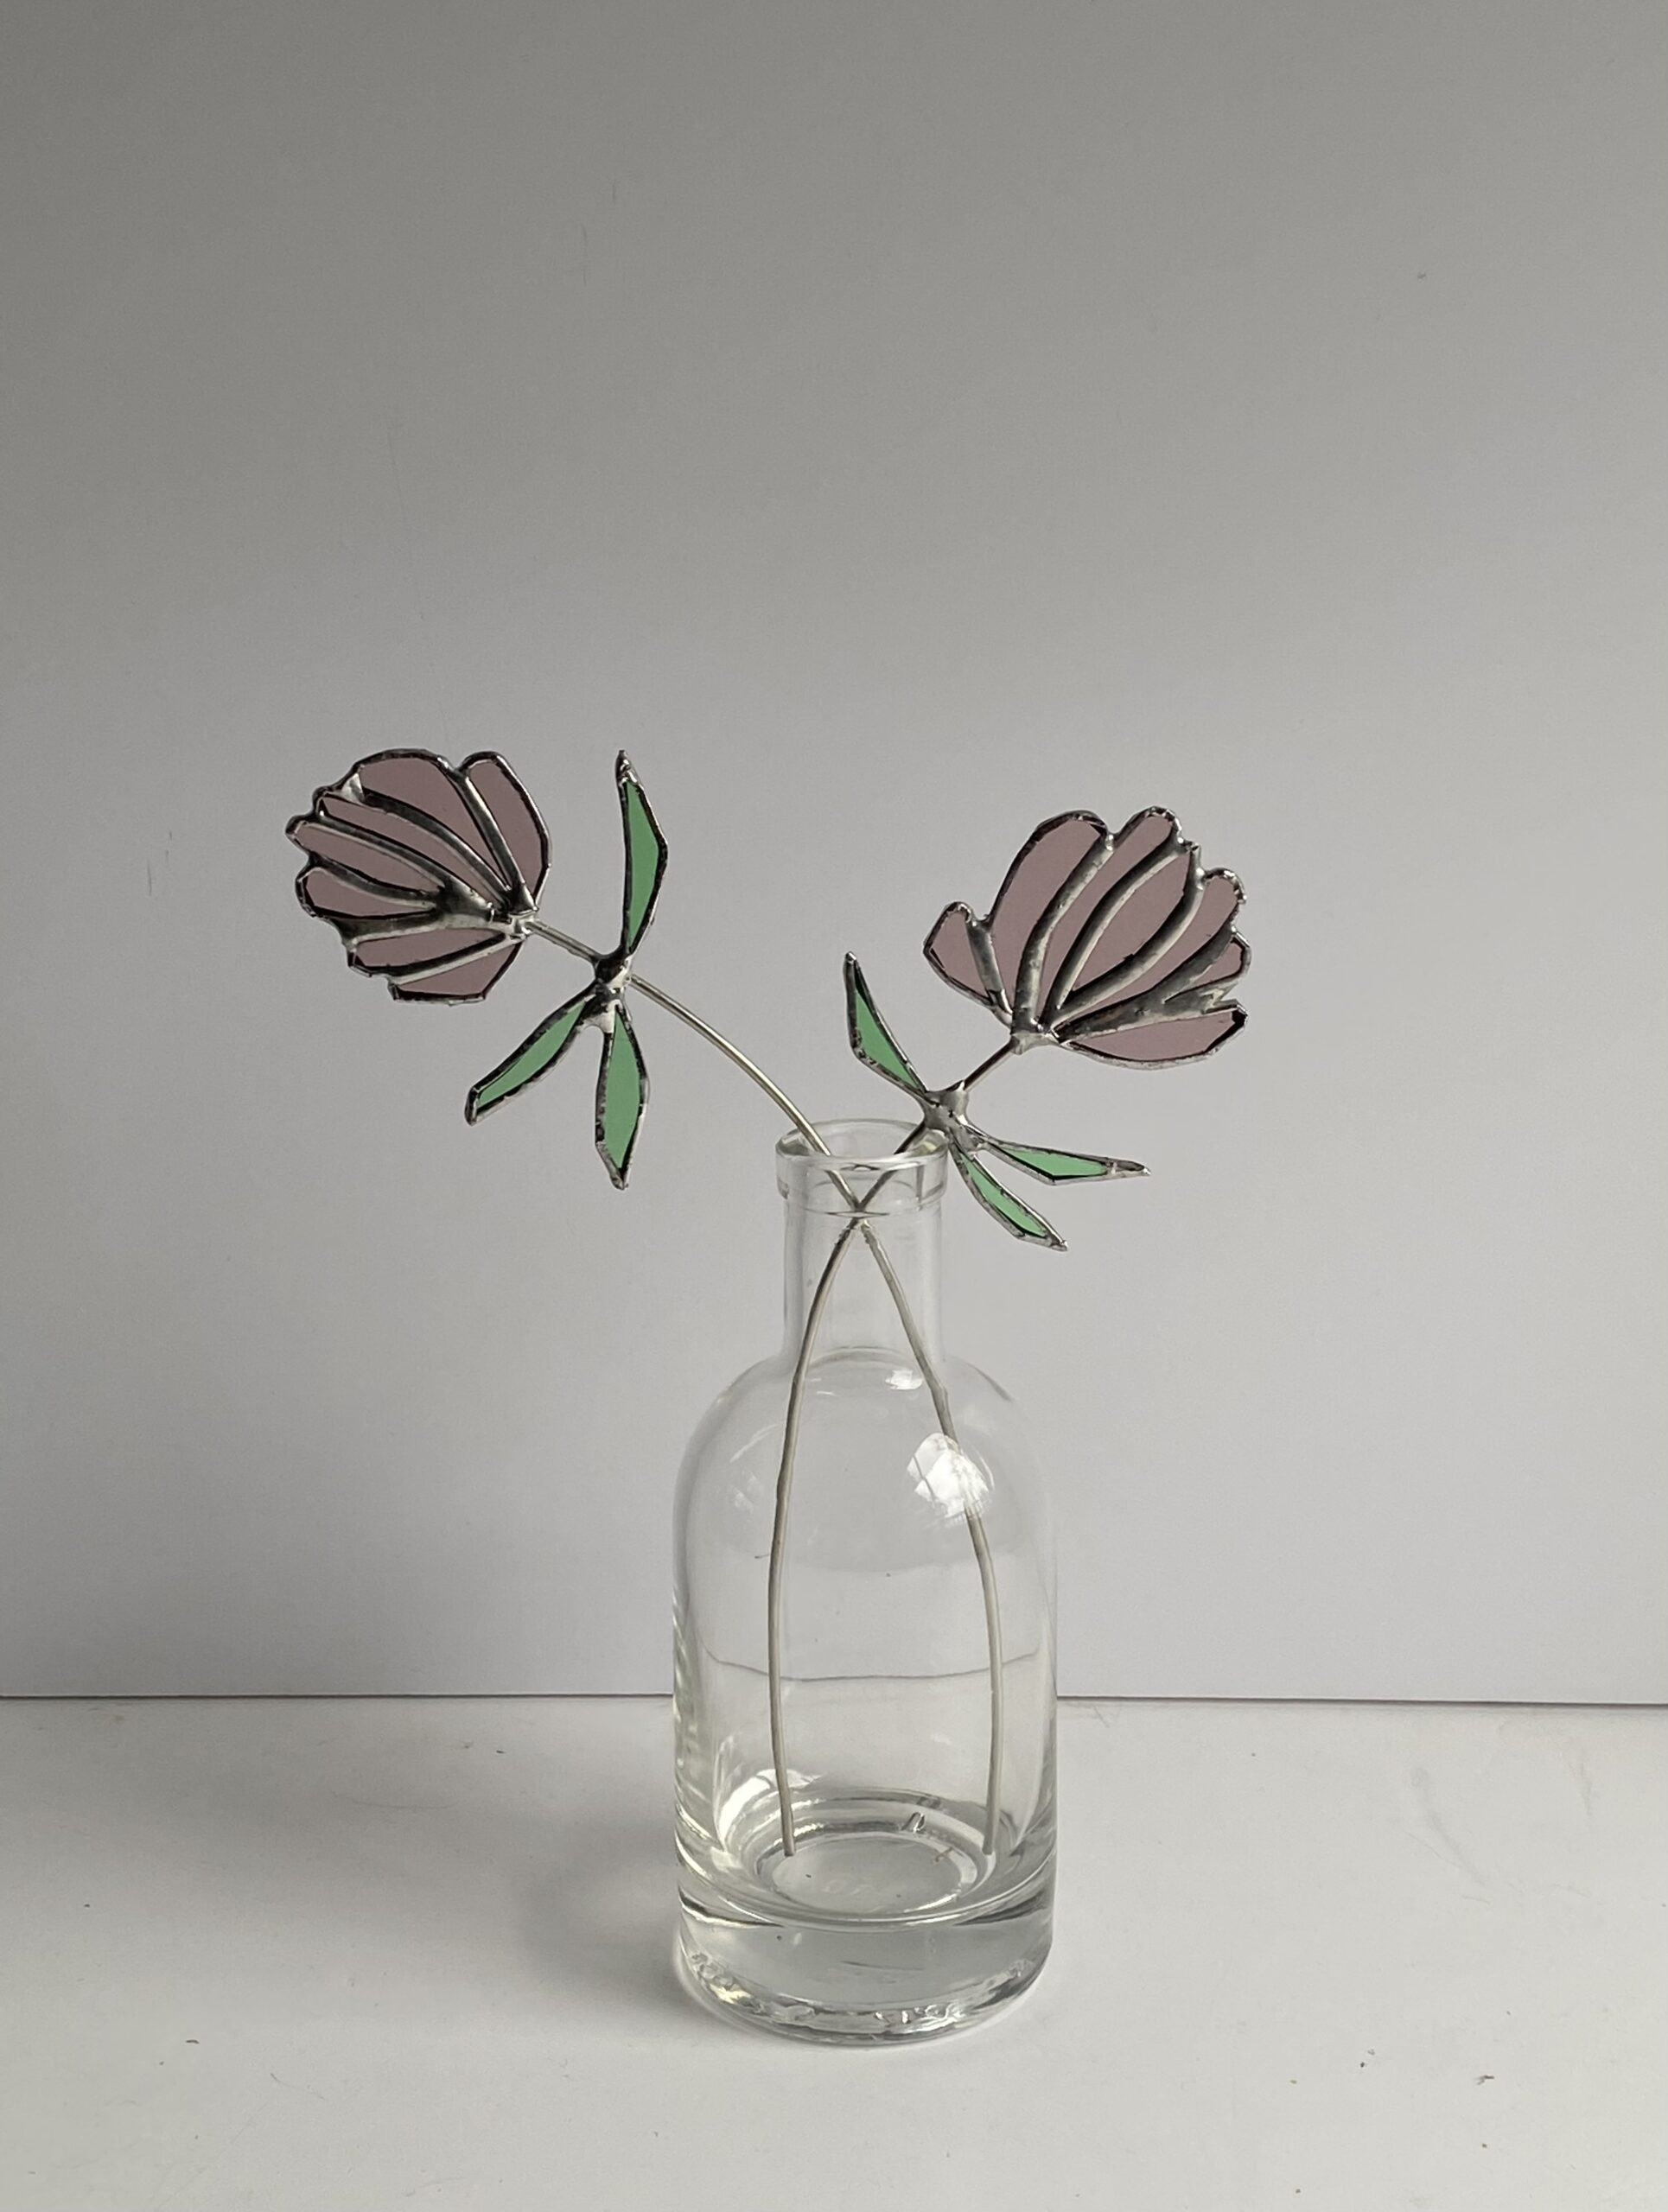 Stained glass flowers of clover by Samantha Yates.